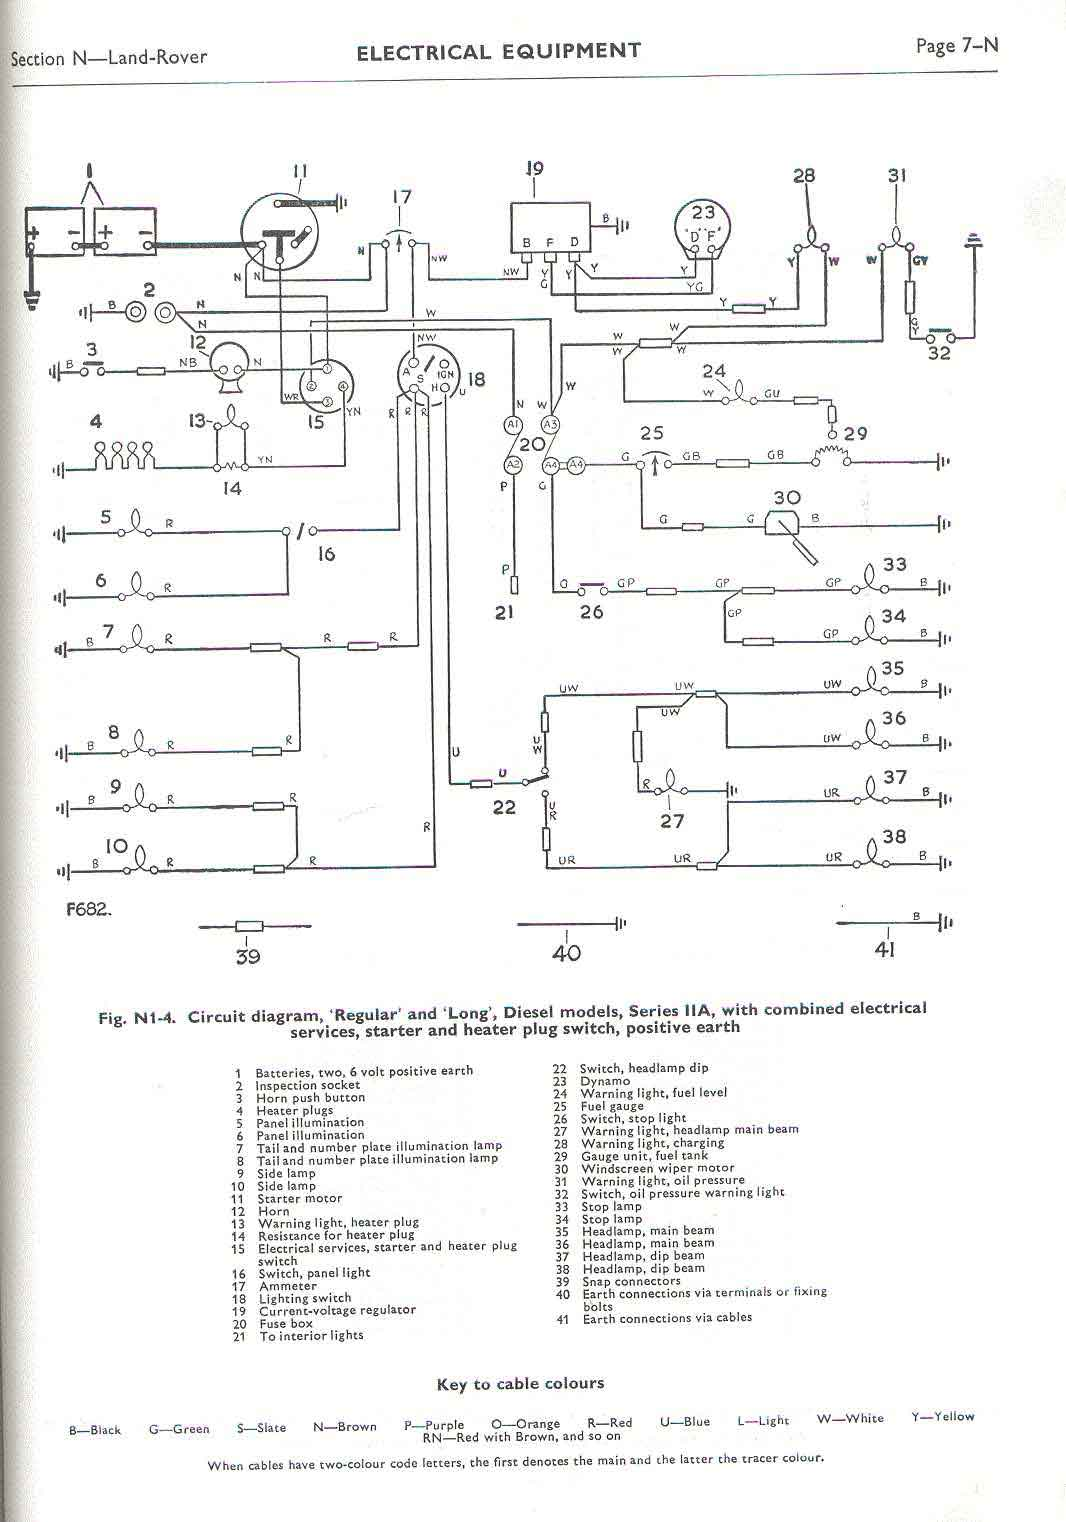 Land Rover Wiring Diagram Wire Data Schema Abs 2004 Enthusiast Diagrams Faq Repair Maintenance Series Electrical Rh Lrfaq Org Colours